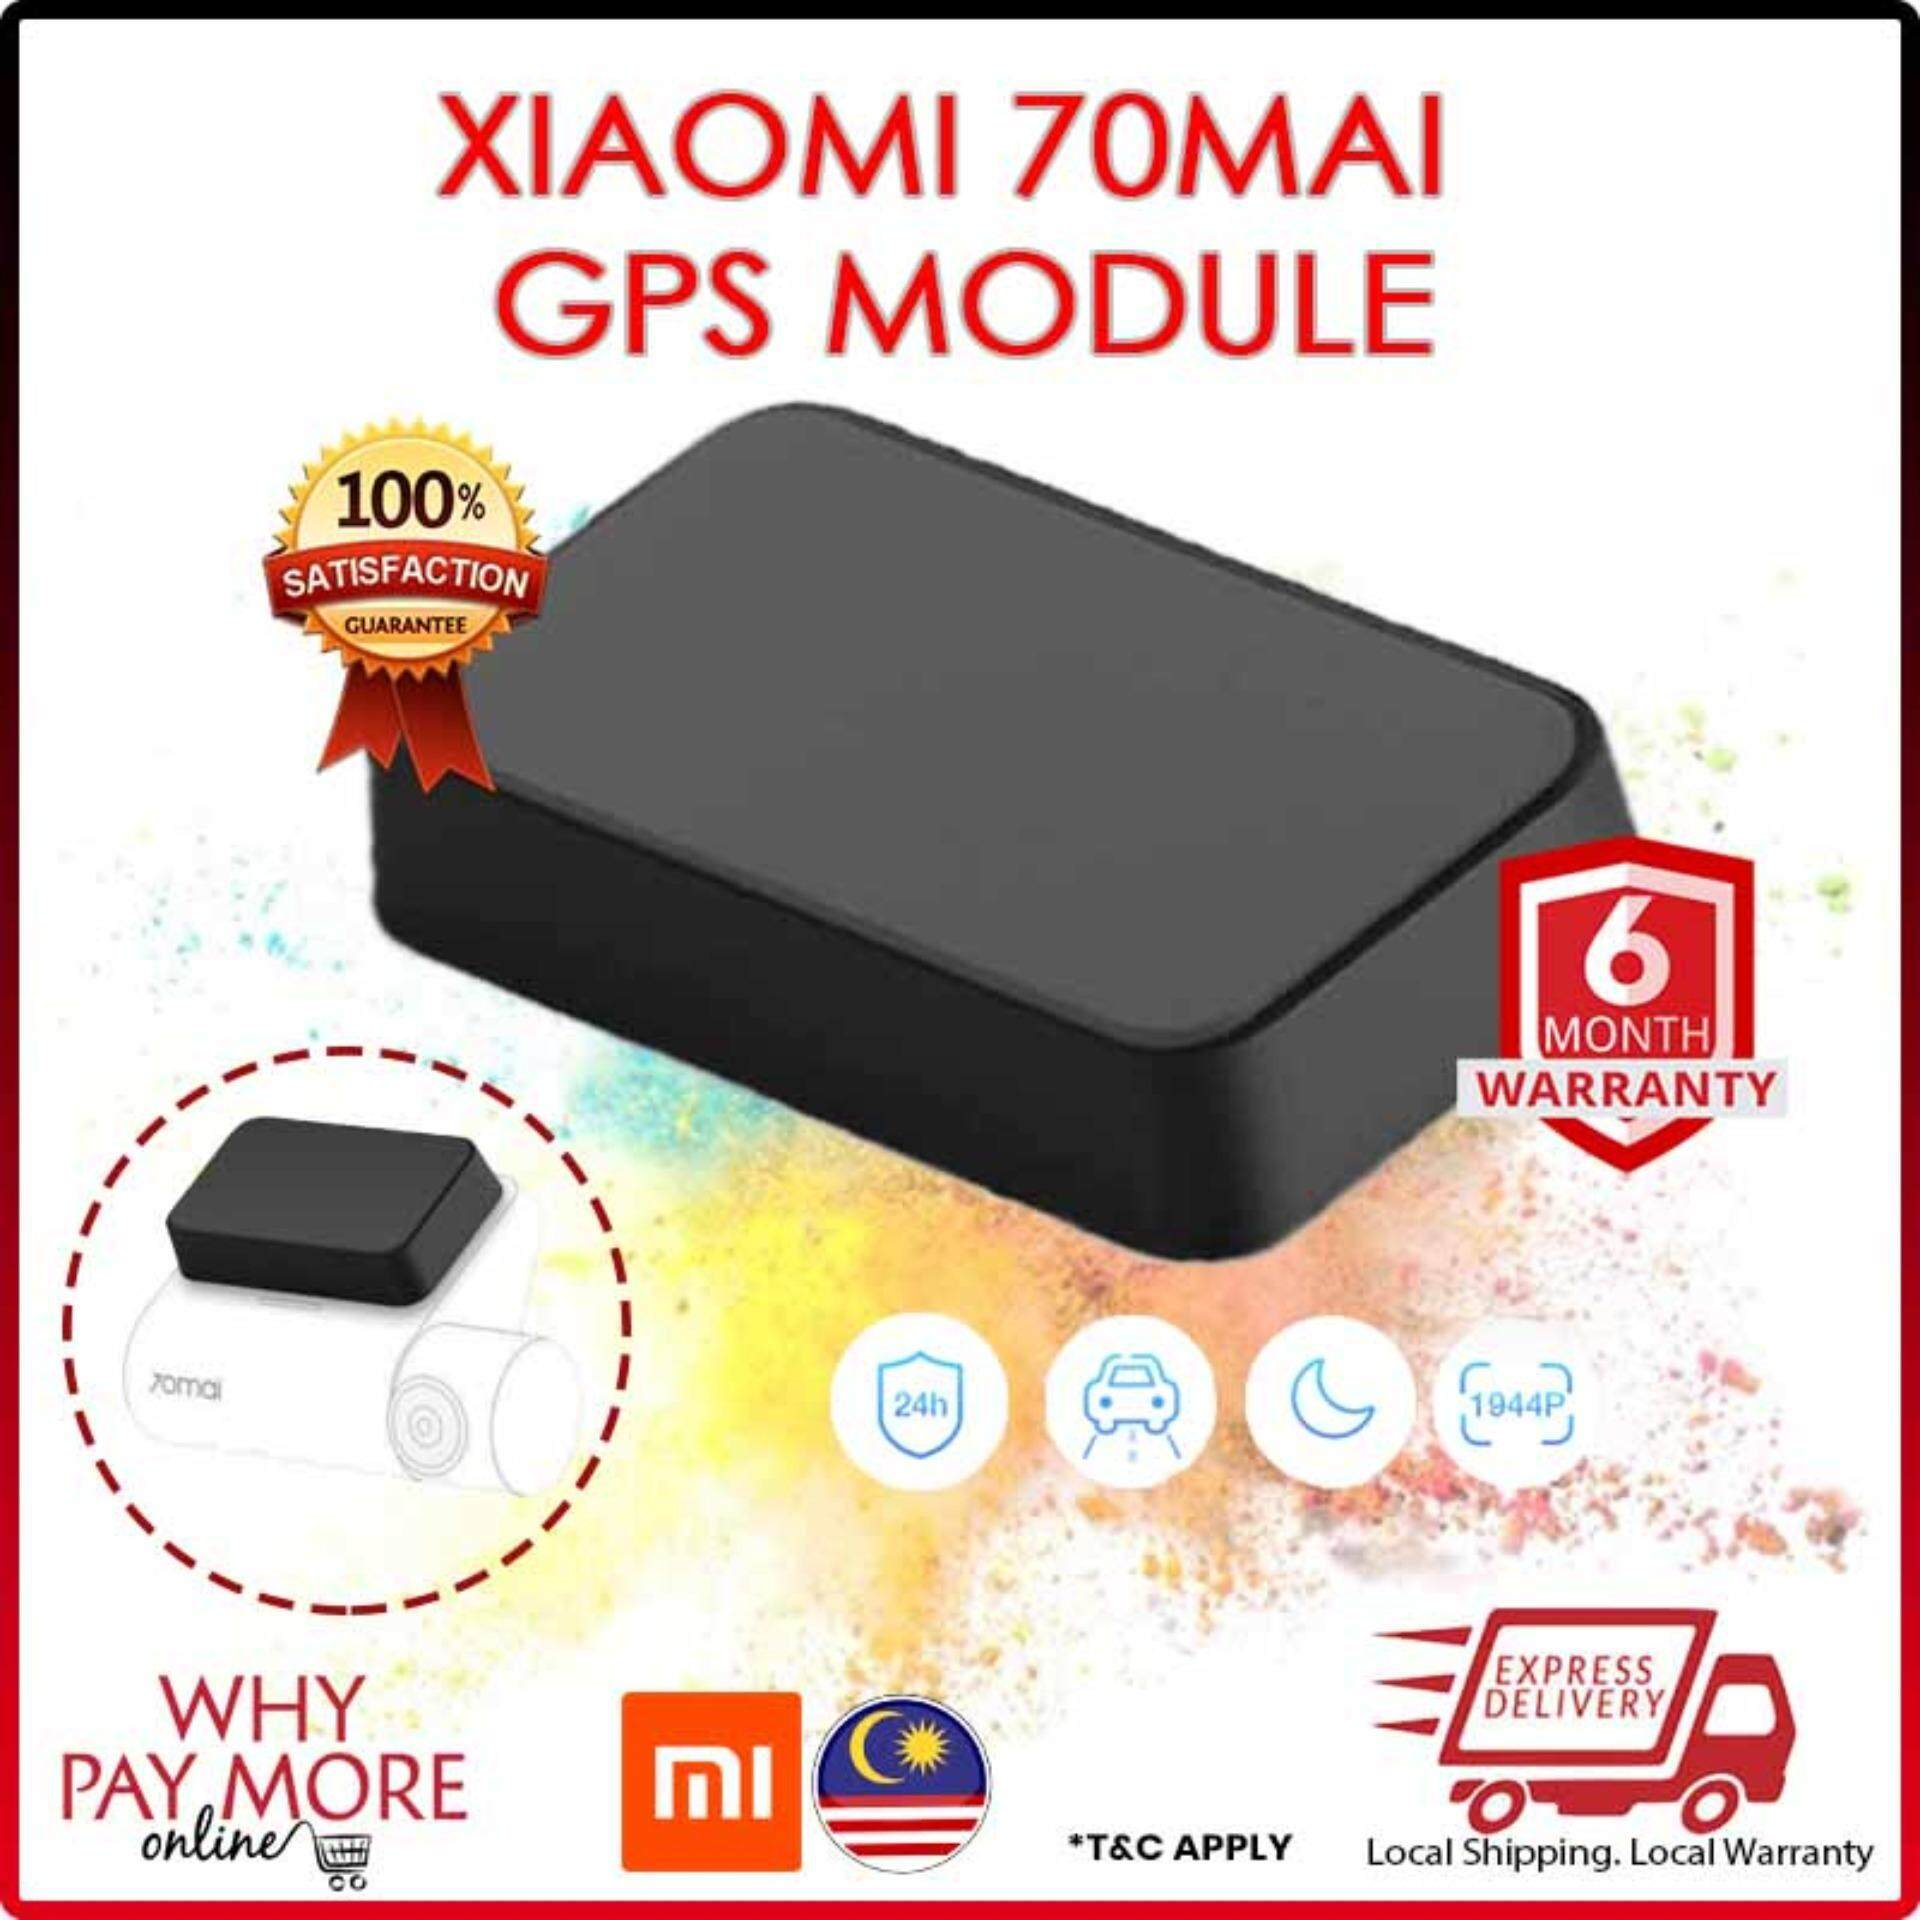 [ORIGINAL]Xiaomi 70mai Dashcam 70 Minutes GPS Module ADAS for Dash Cam PRO MiDrive D03 E-Dog Panel Car Camera